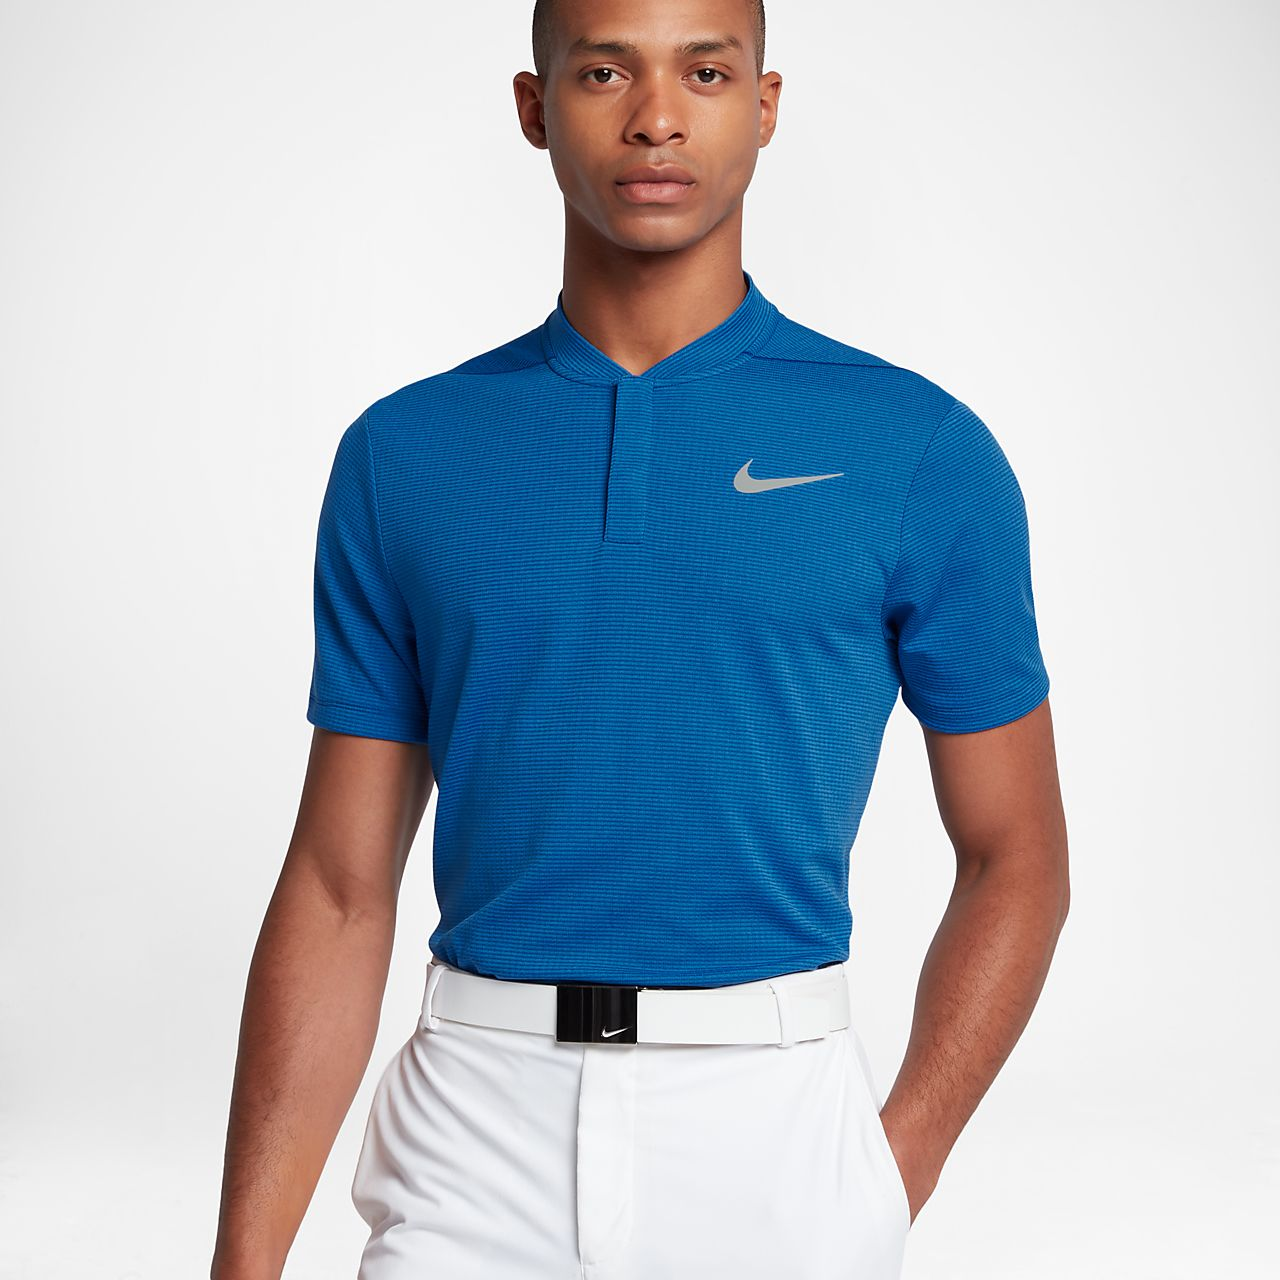 nike shirt slim fit